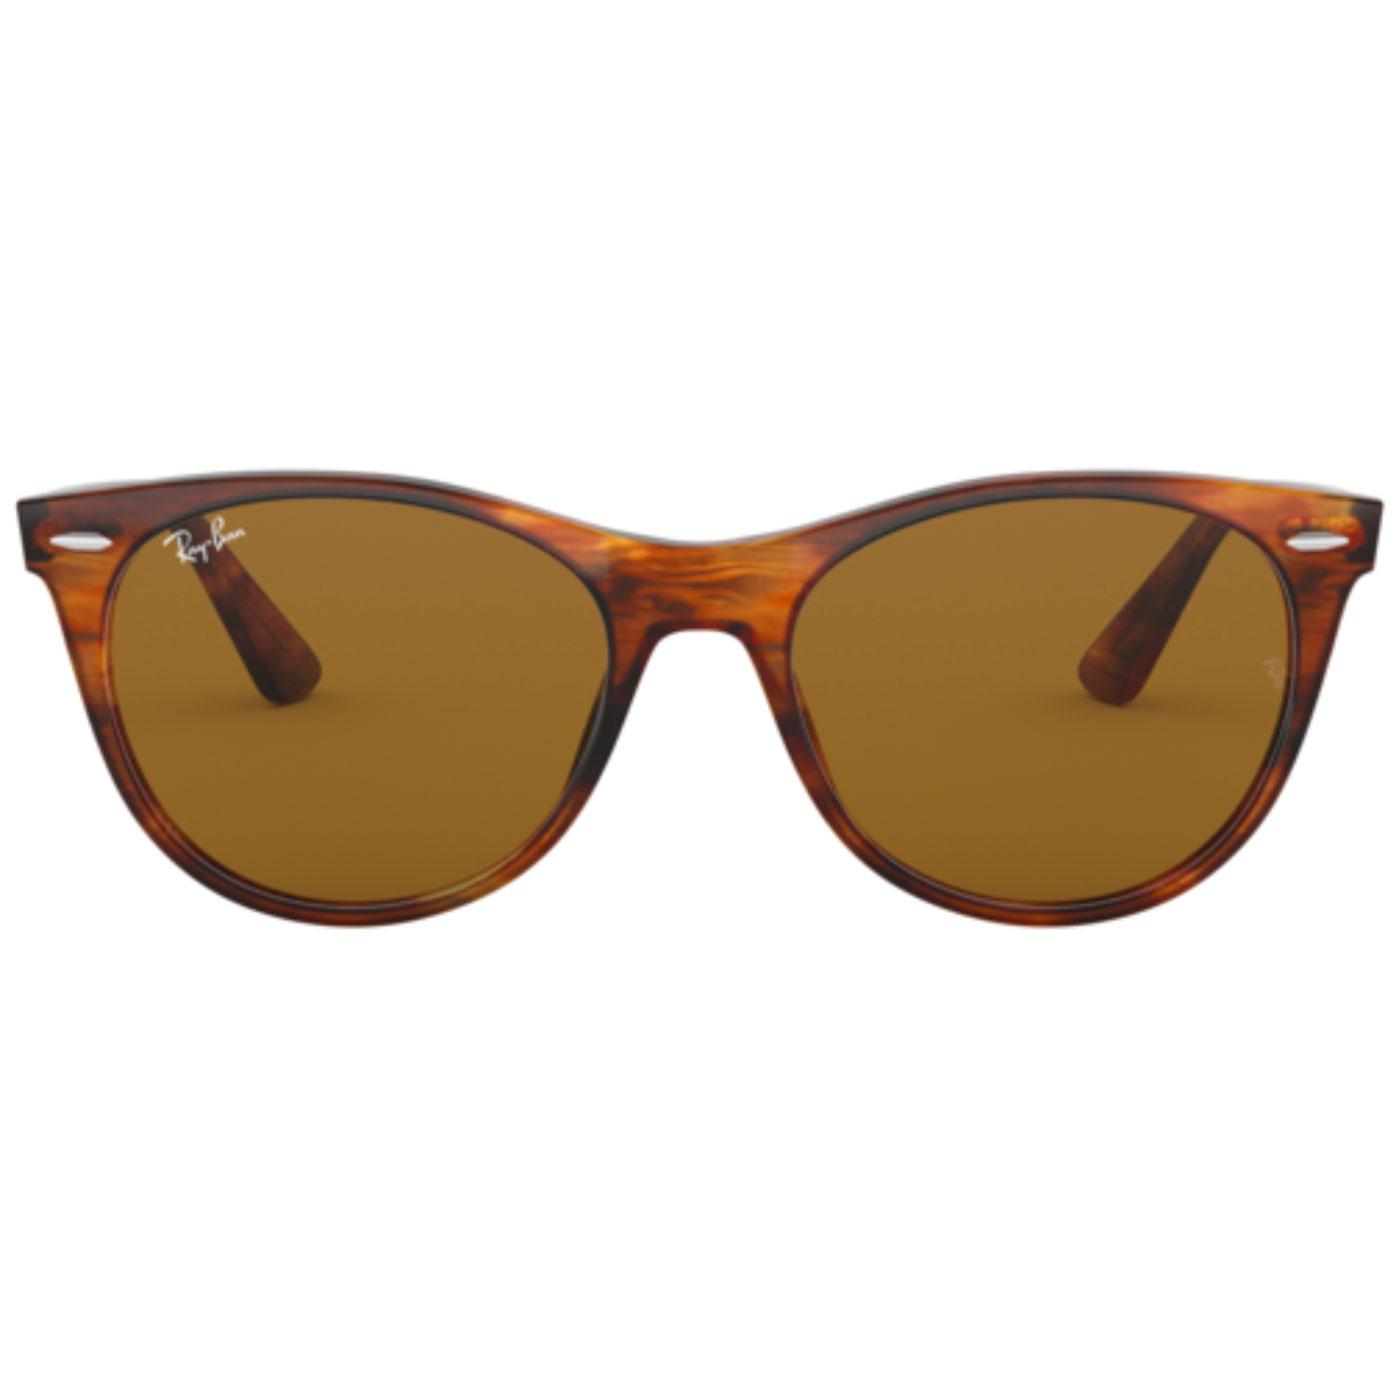 RAY-BAN Retro Striped Havana Wayfarer Sunglasses